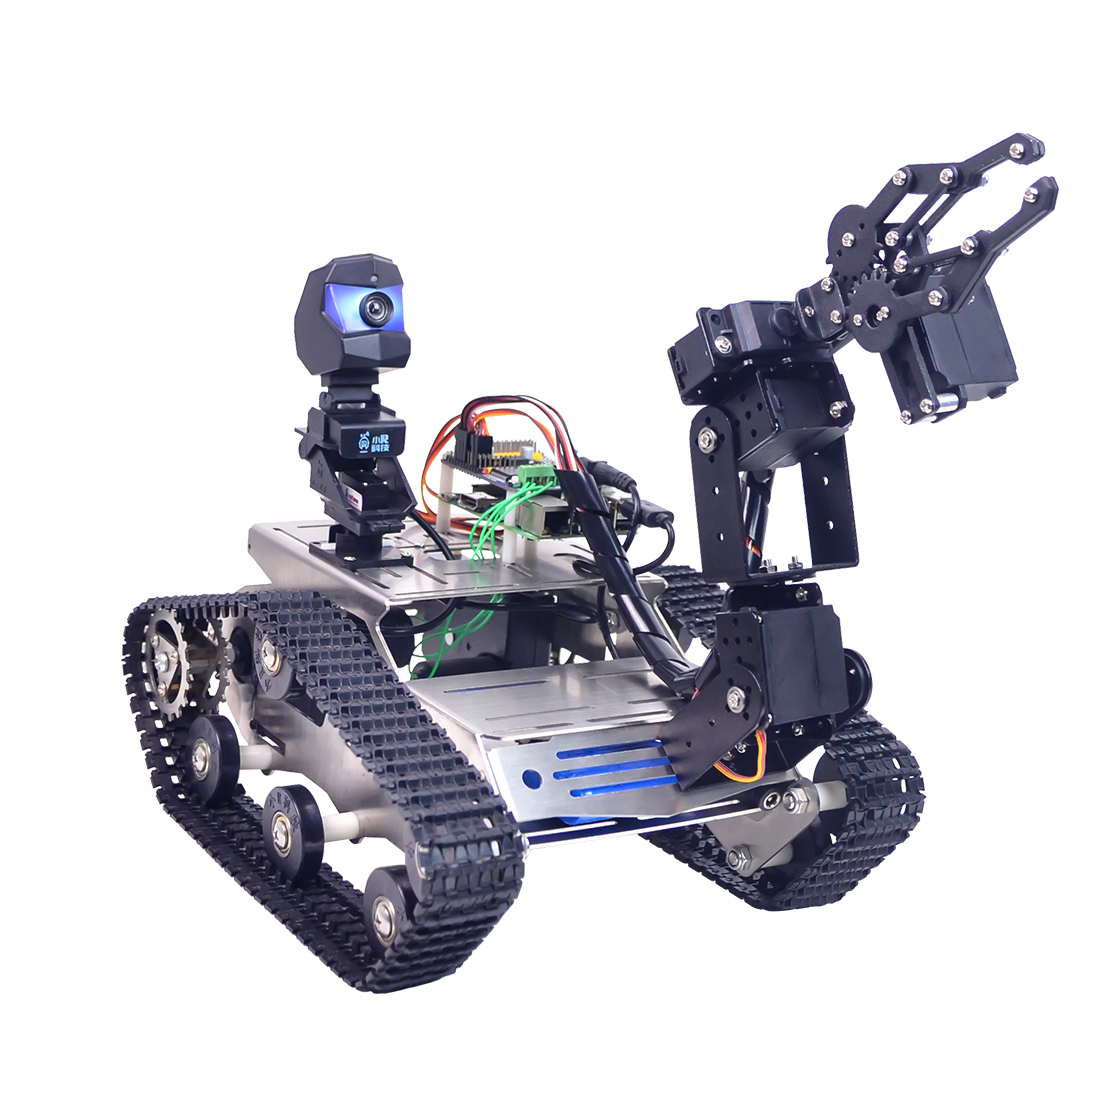 Modiker High Tech Programmable TH WiFi Bluetooth FPV Tank Robot Car Kit With Arm For Arduino MEGA  Standard  Small Claw